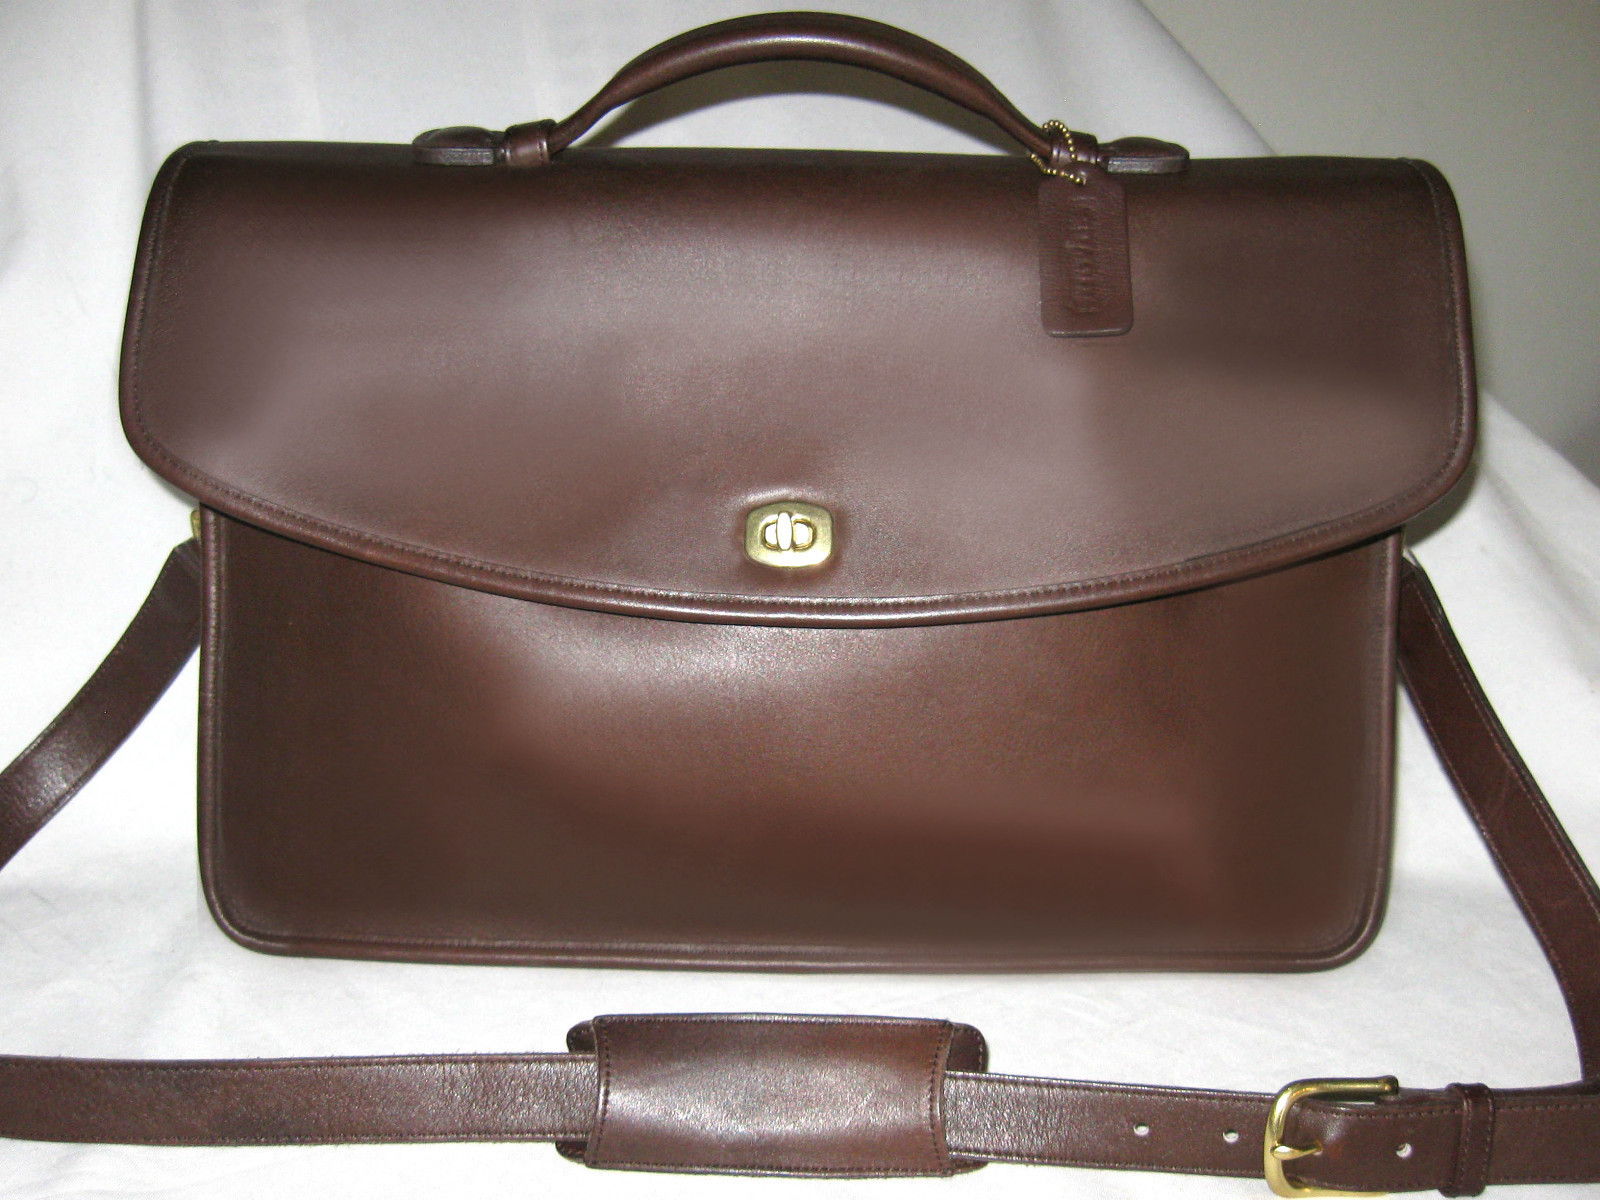 Buy briefcases for women - $600 Coach Brown Lexington Briefcase Mens Or Women Attache Messenger Perfect